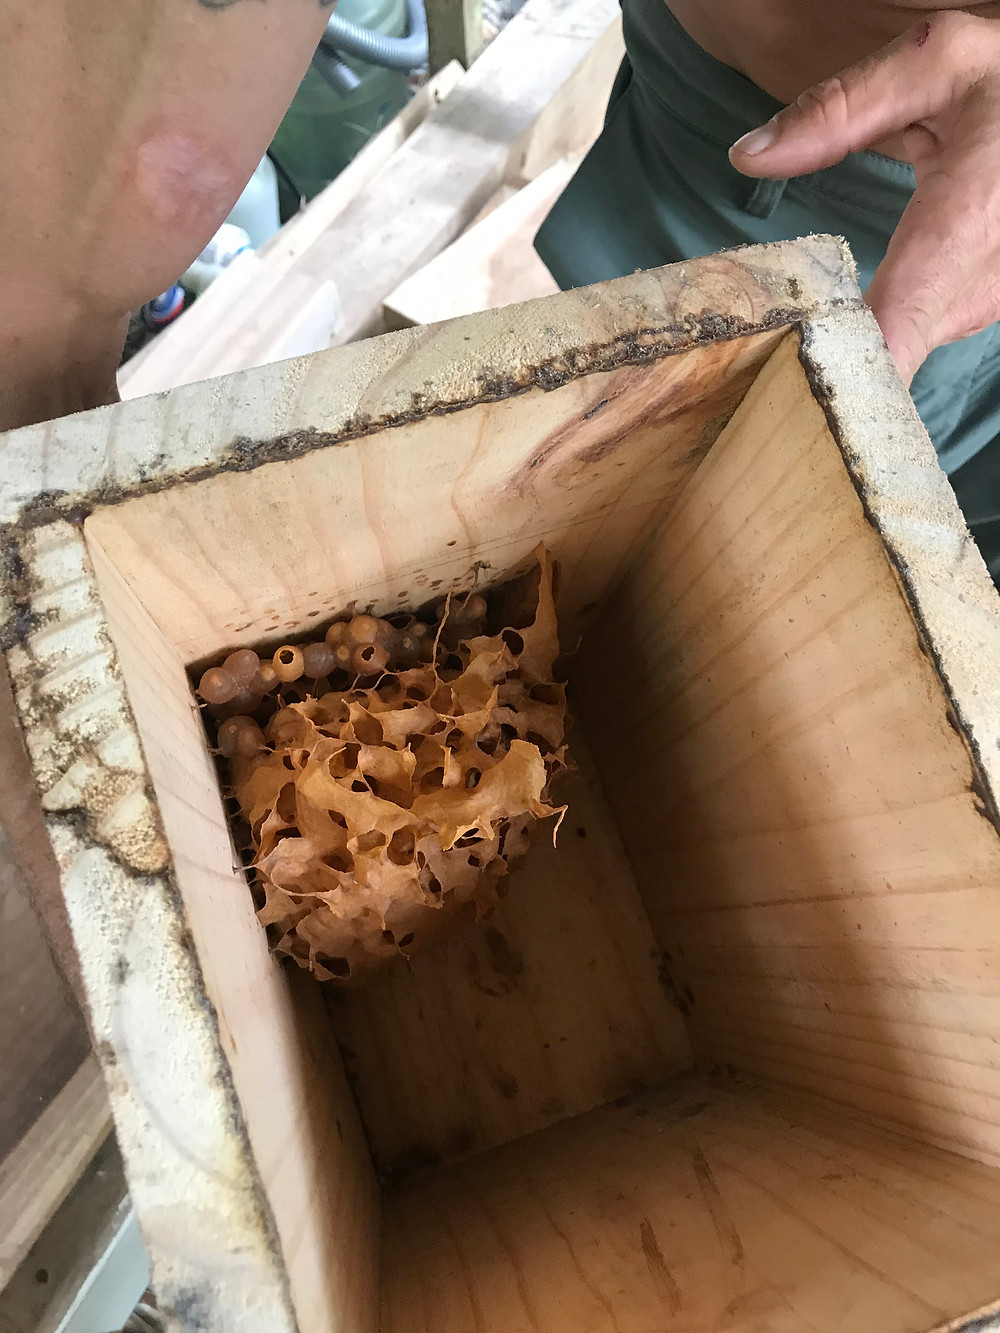 Curvy wax hive, queen in the middle